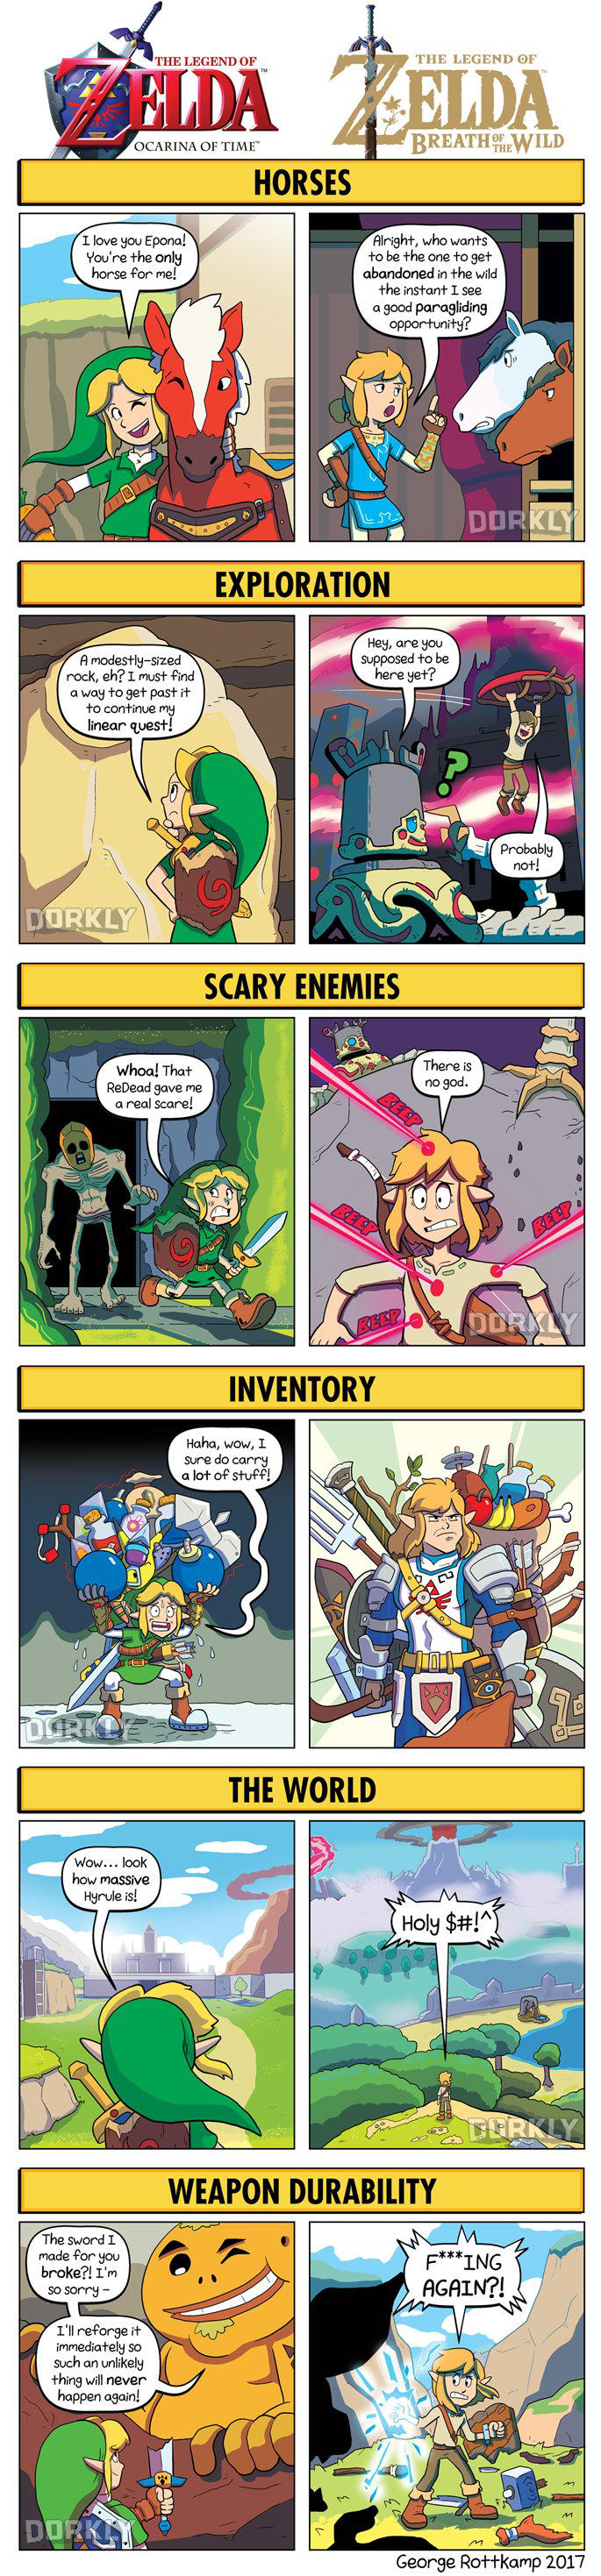 DORKLY: Ocarina of Time vs. Breath of the Wild by GeorgeRottkamp